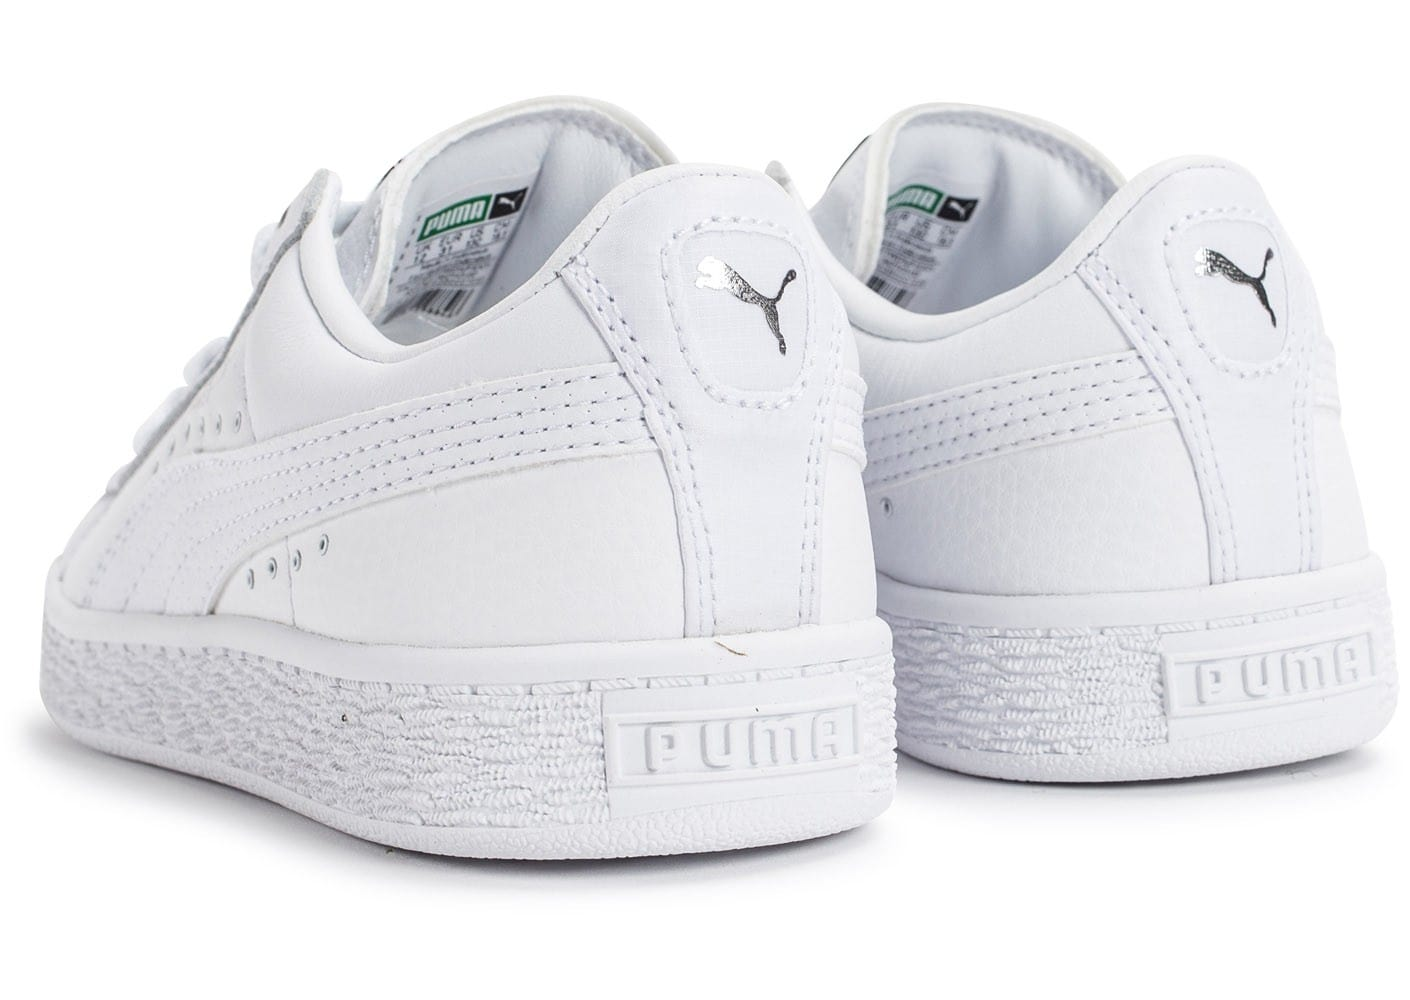 puma basket enfant blanche et argent chaussures enfant chausport. Black Bedroom Furniture Sets. Home Design Ideas